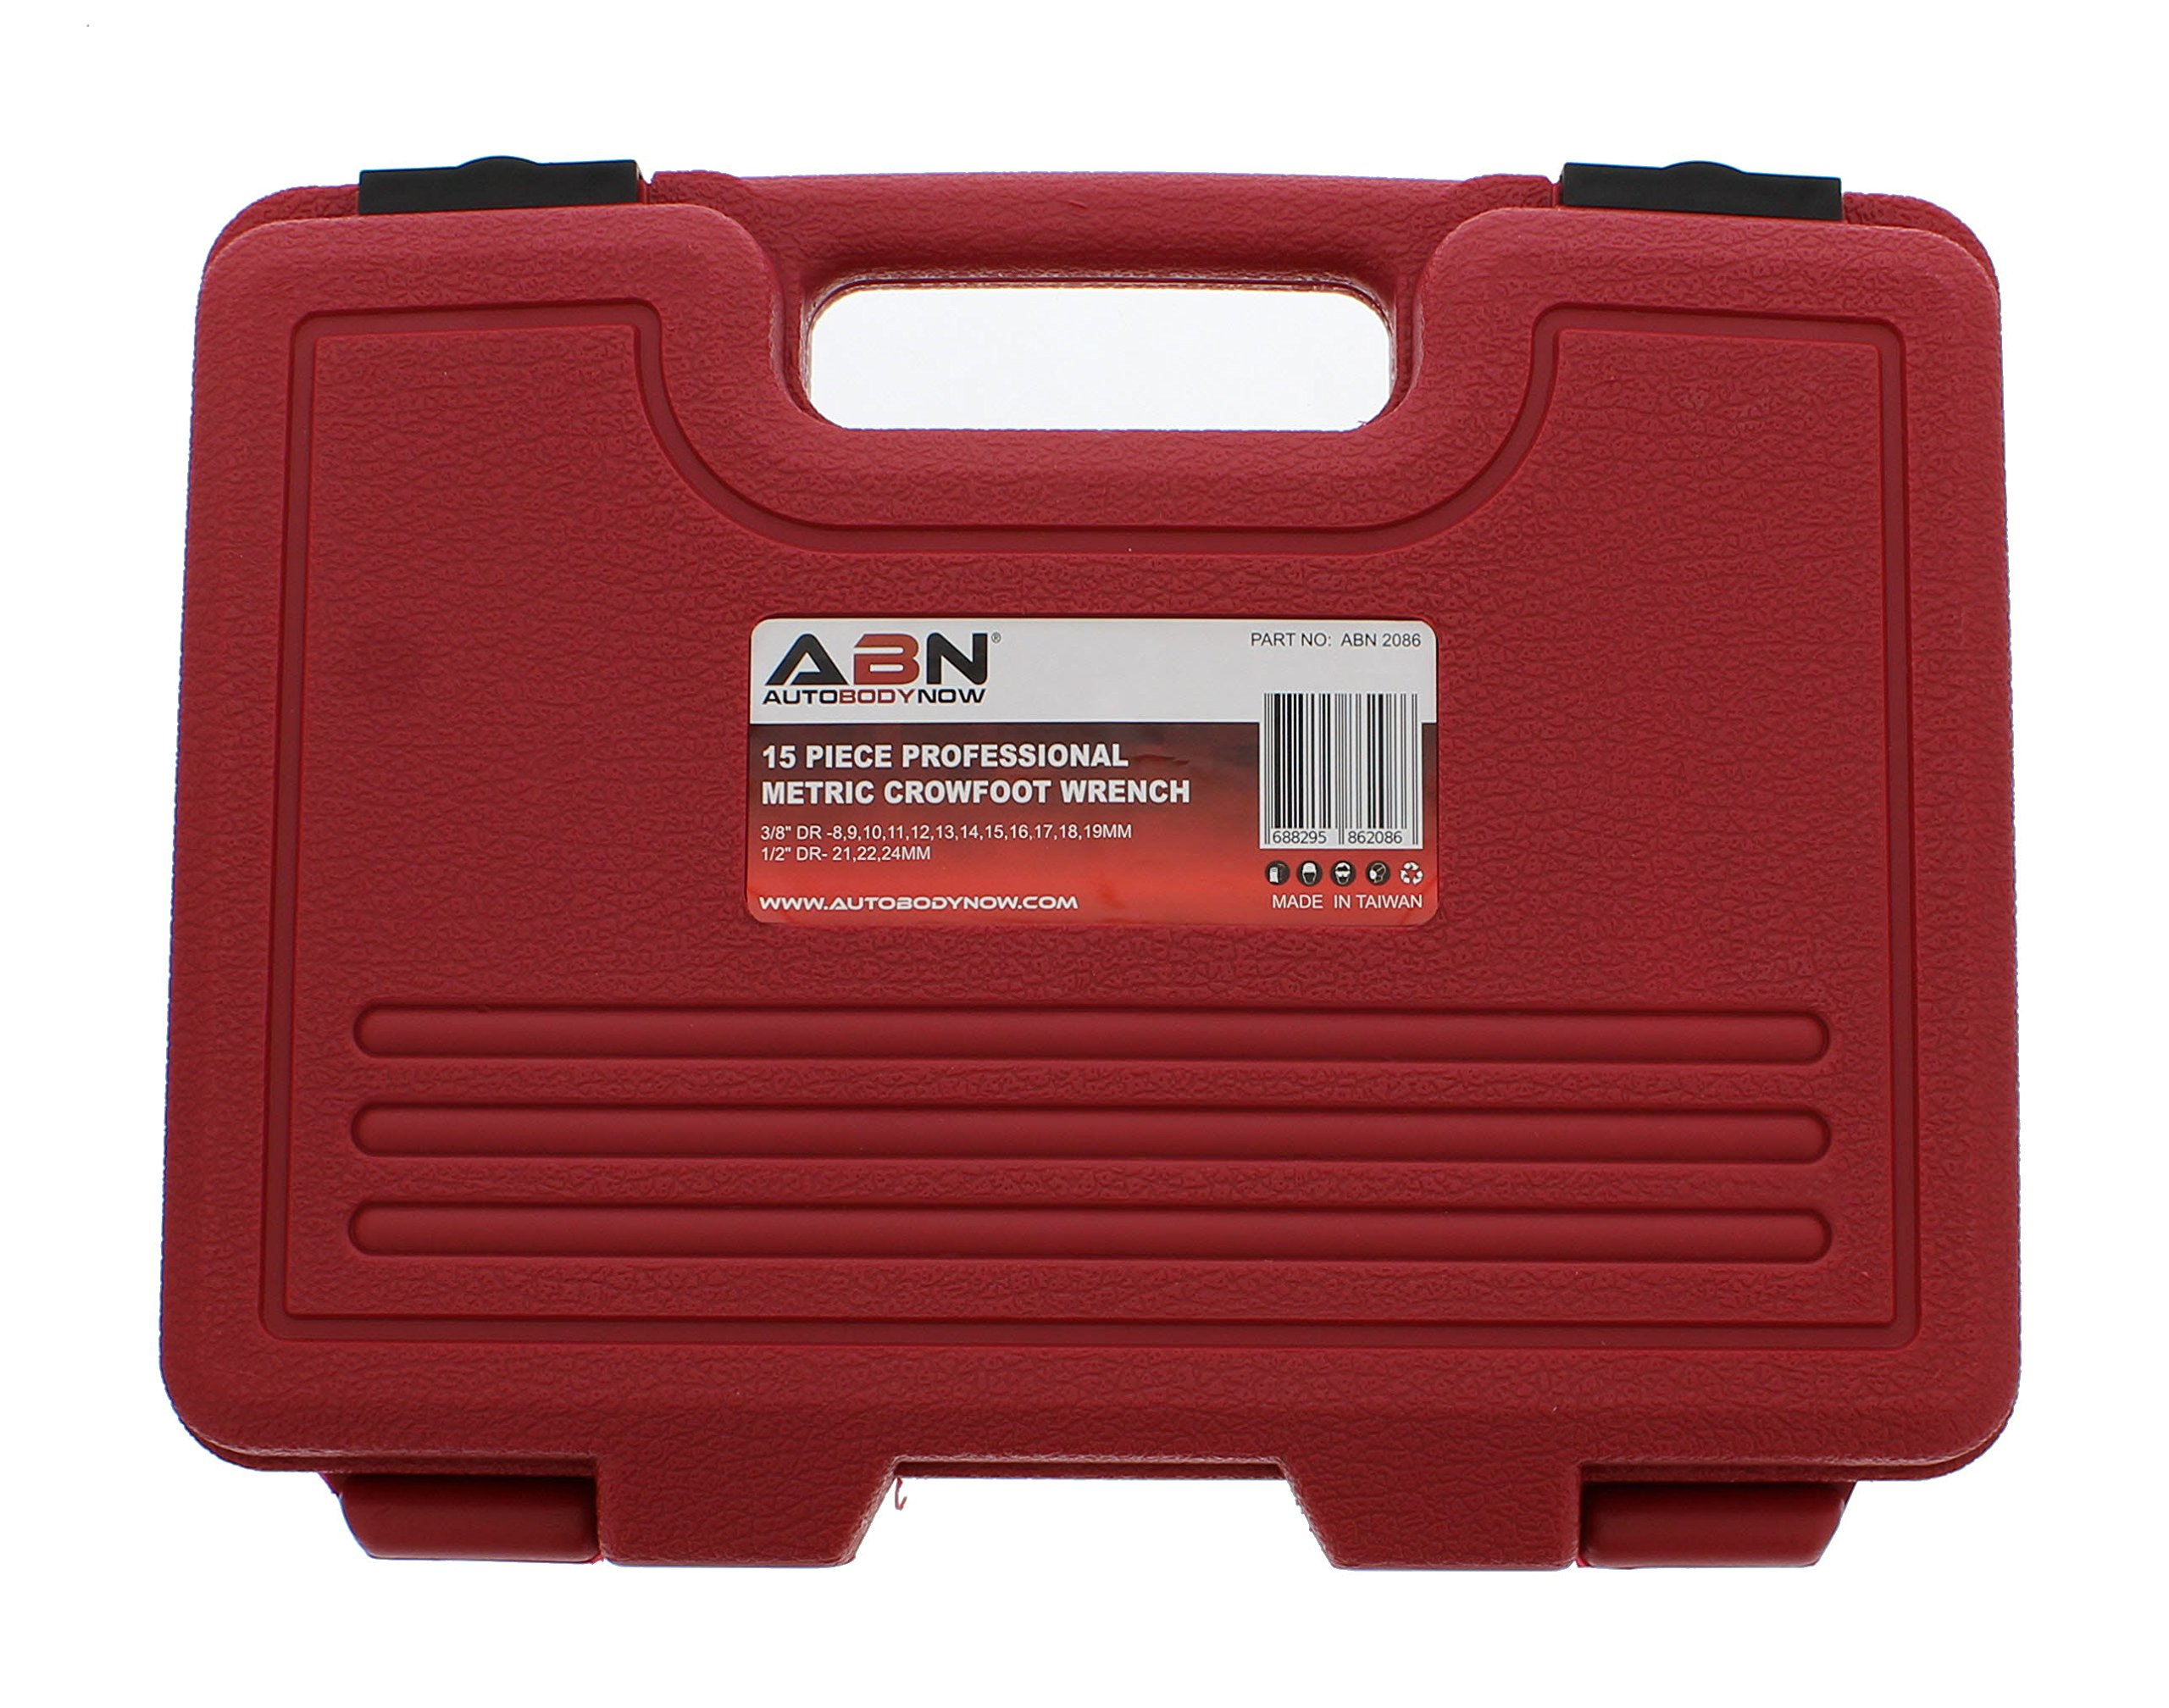 ABN Jumbo Crowfoot Flare Nut Wrench Set Metric 15-Piece Tool Kit for 3/8in and 1/2in Drive Ratchet by ABN (Image #5)